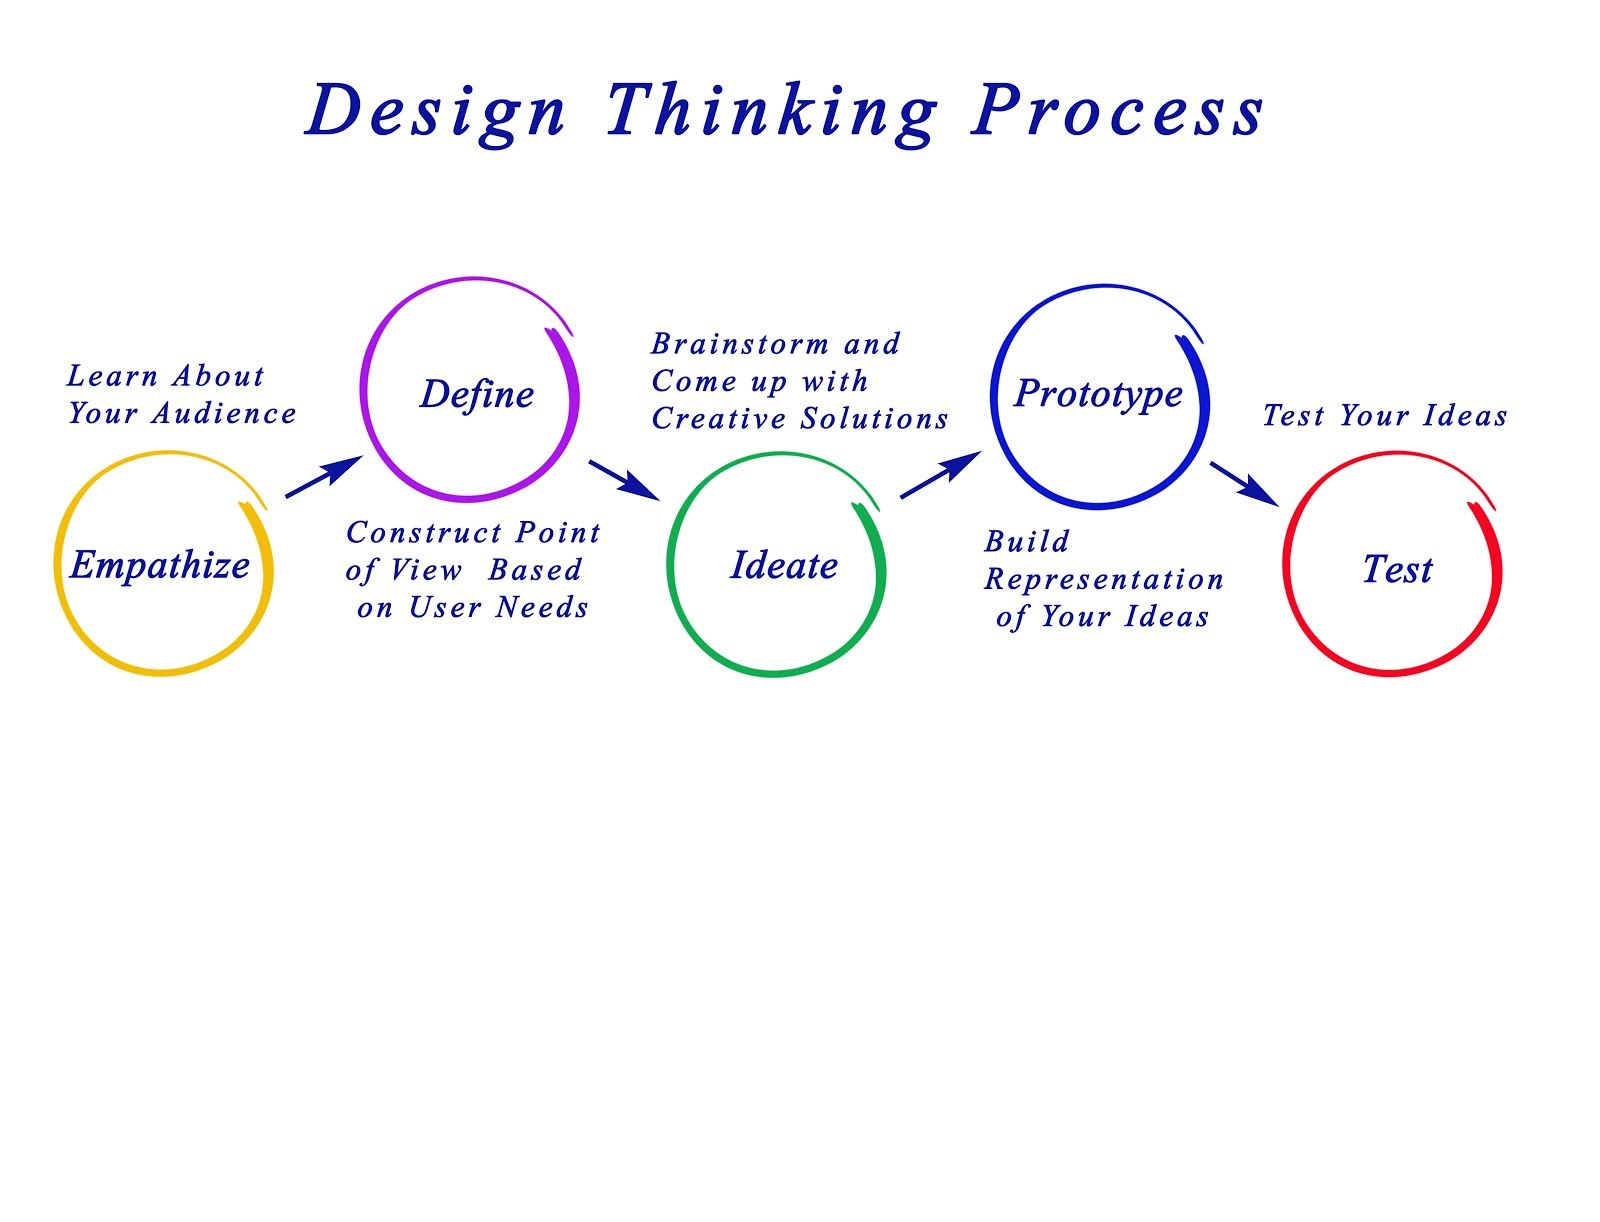 The 5 steps of design thinking.